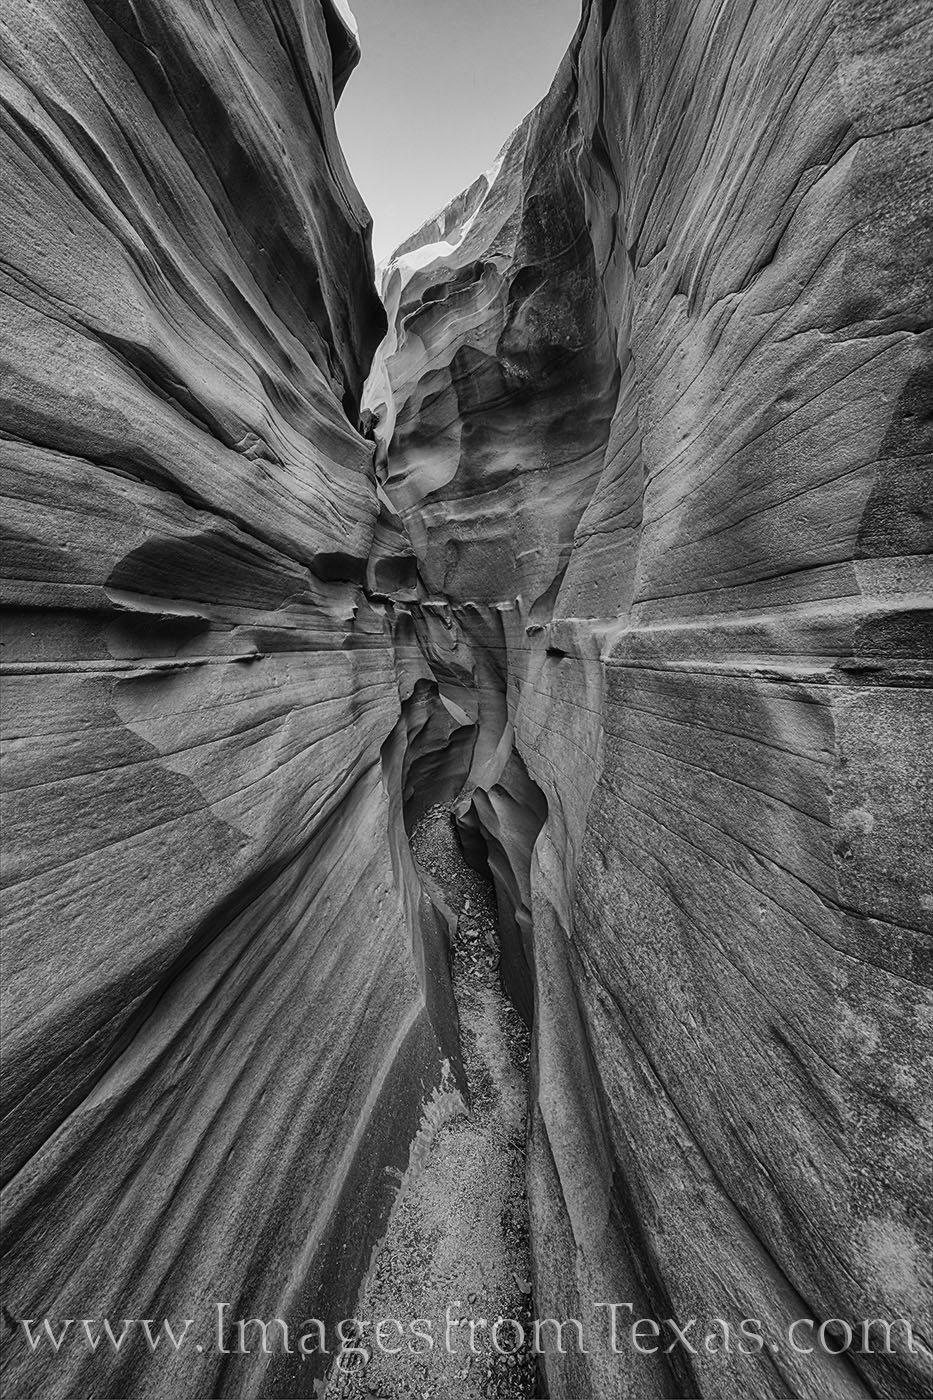 This black and white image highlights the curves and lines of this Texas slot canyon found in Palo Duro Canyon State Park. While...